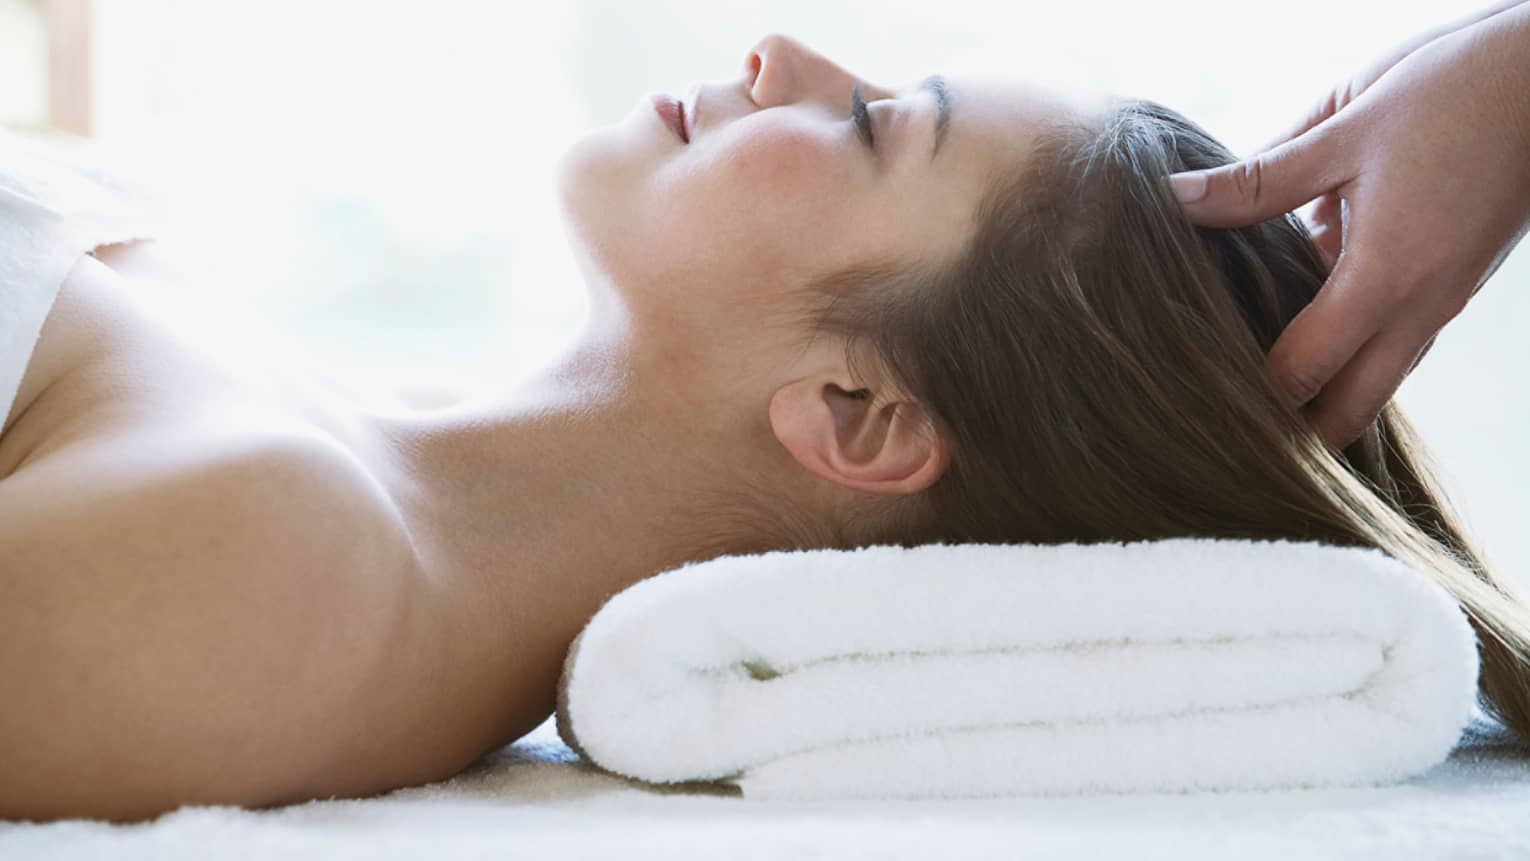 Woman lays on back with head on folded white towel, closes eyes as hands massage her scalp